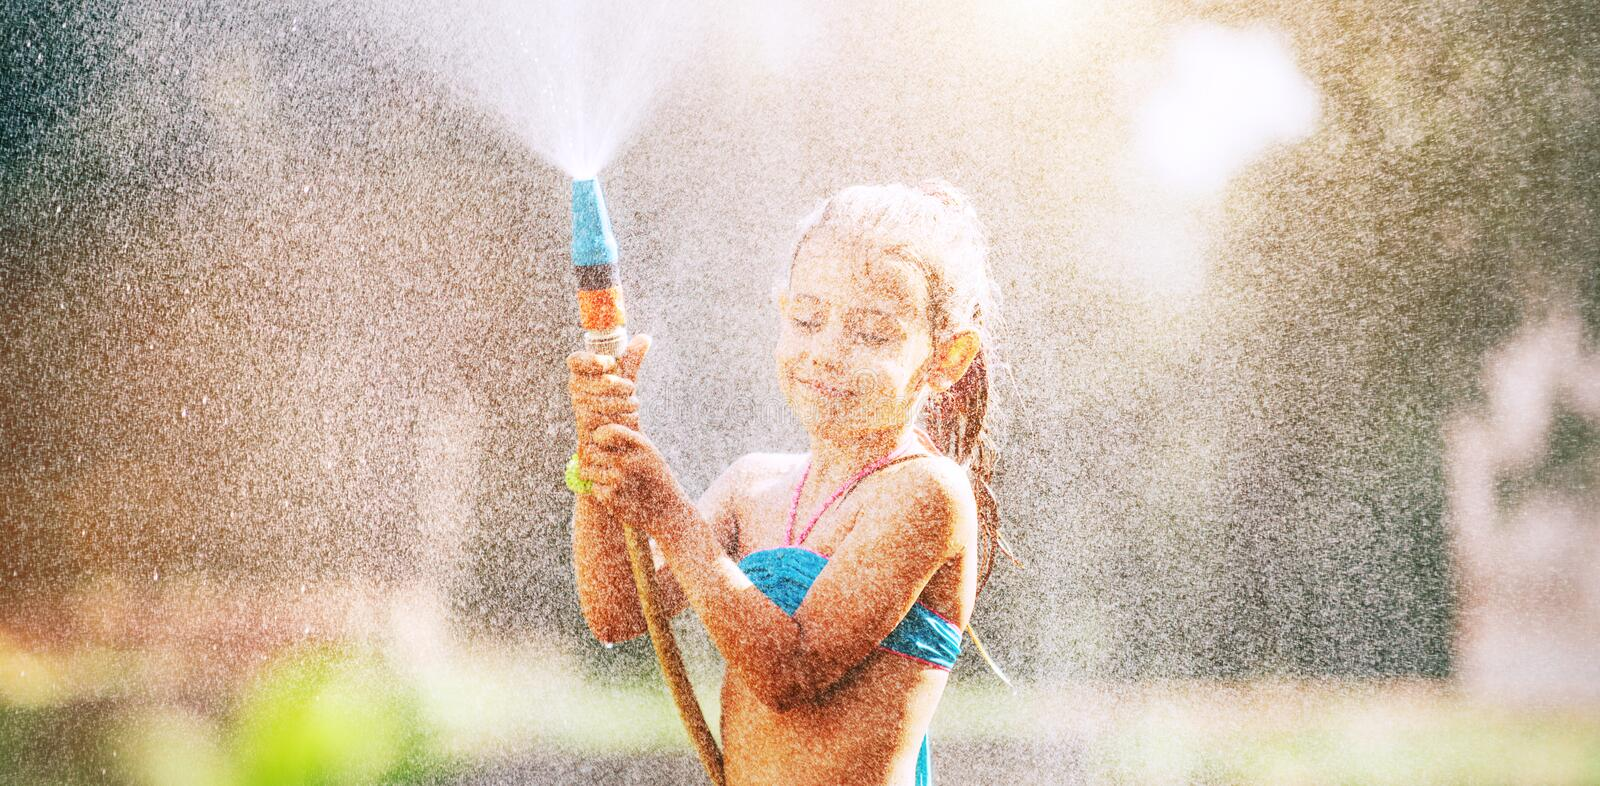 Cute little girl sprinkls a water for herself from the hose, makes a rain. pleasure for hot summer days stock image